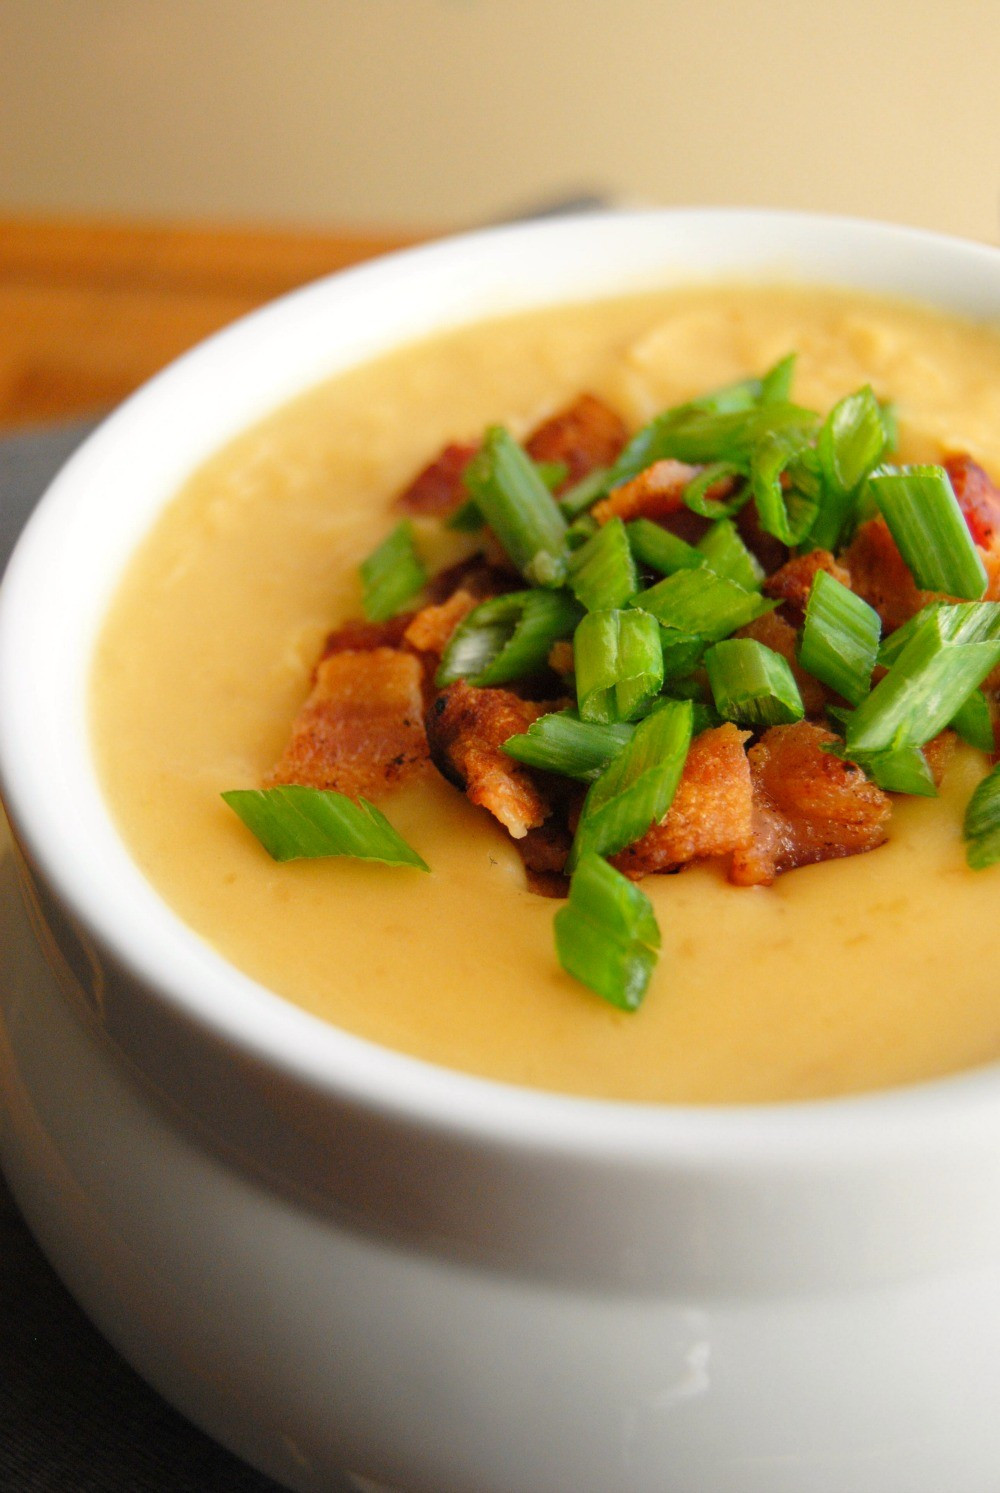 Crockpot Potato Soup Recipe  Nikki's Creamy Crock Pot Potato Soup Recipe Glorious